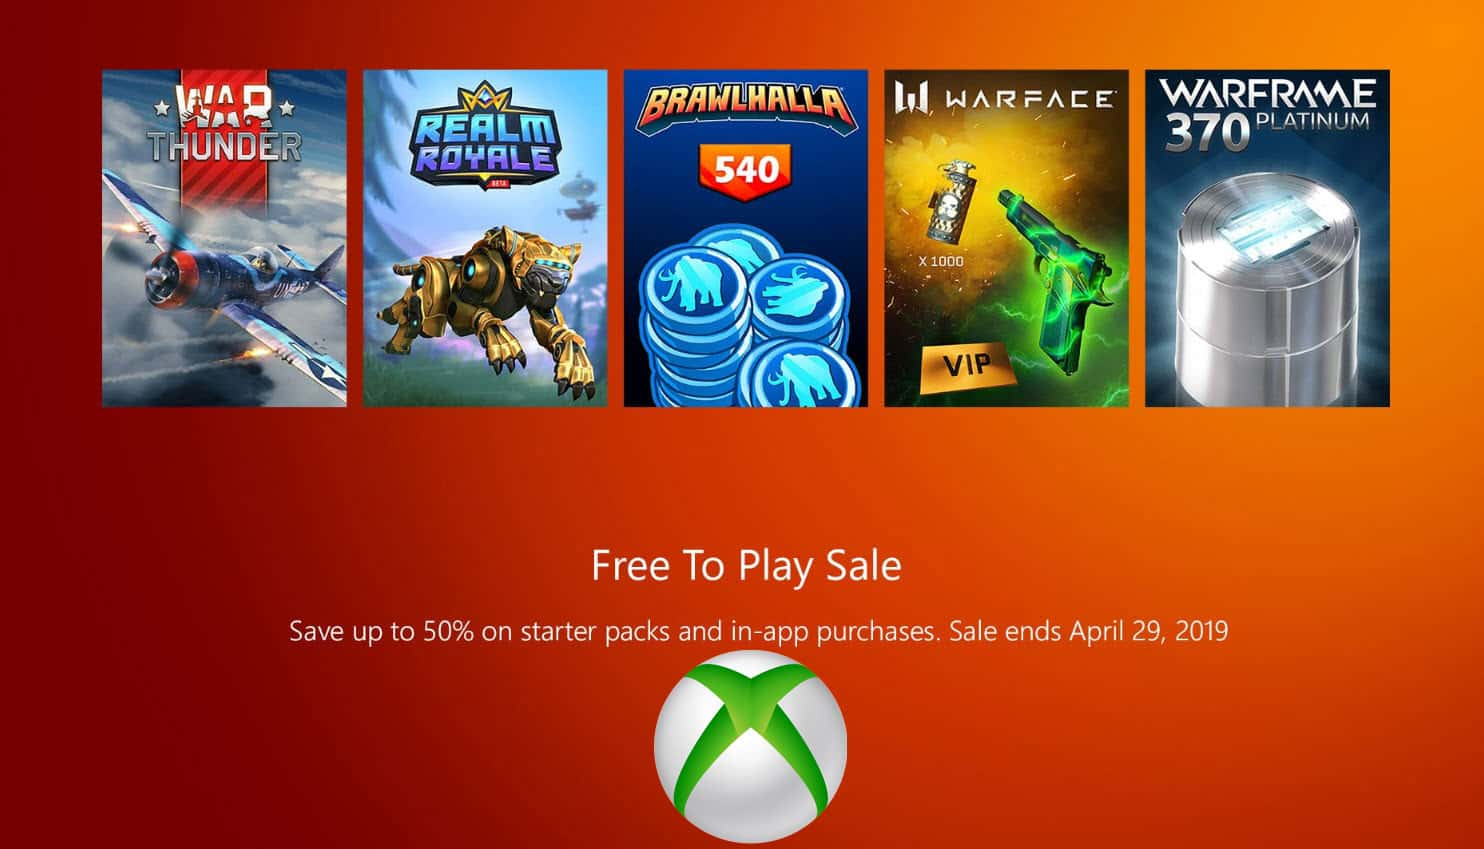 XBOX ONE Save Up To 50% On DLC for Free-to-Play Games